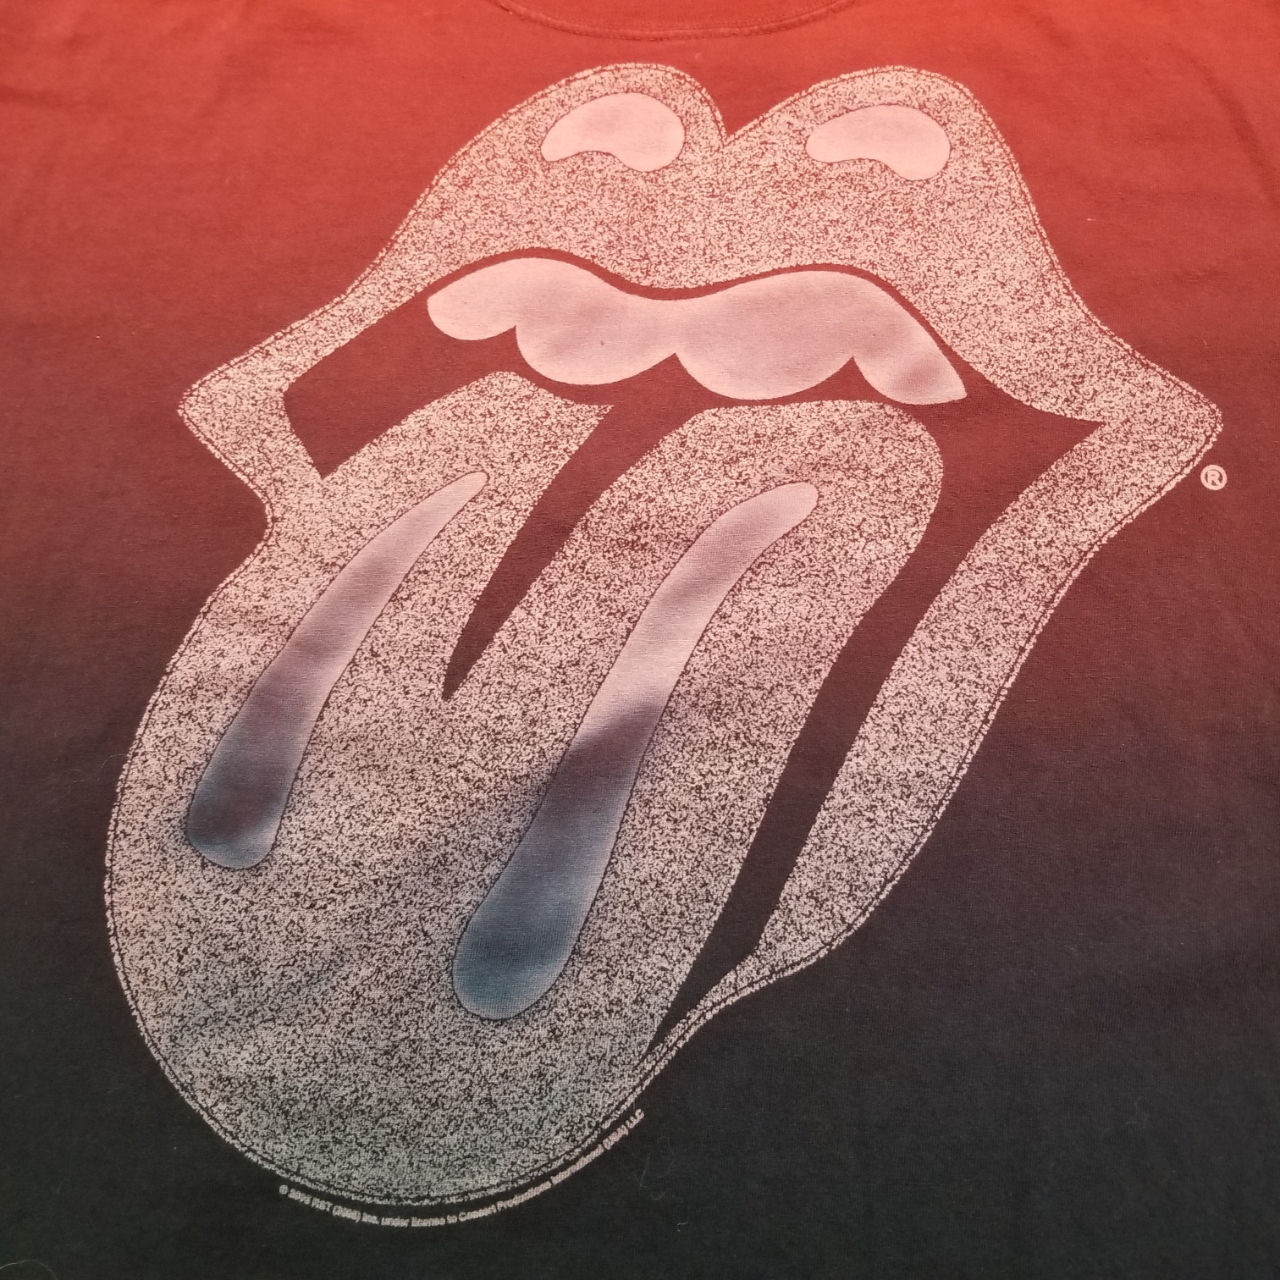 Product Image 1 - 2006 The Rolling Stones Red